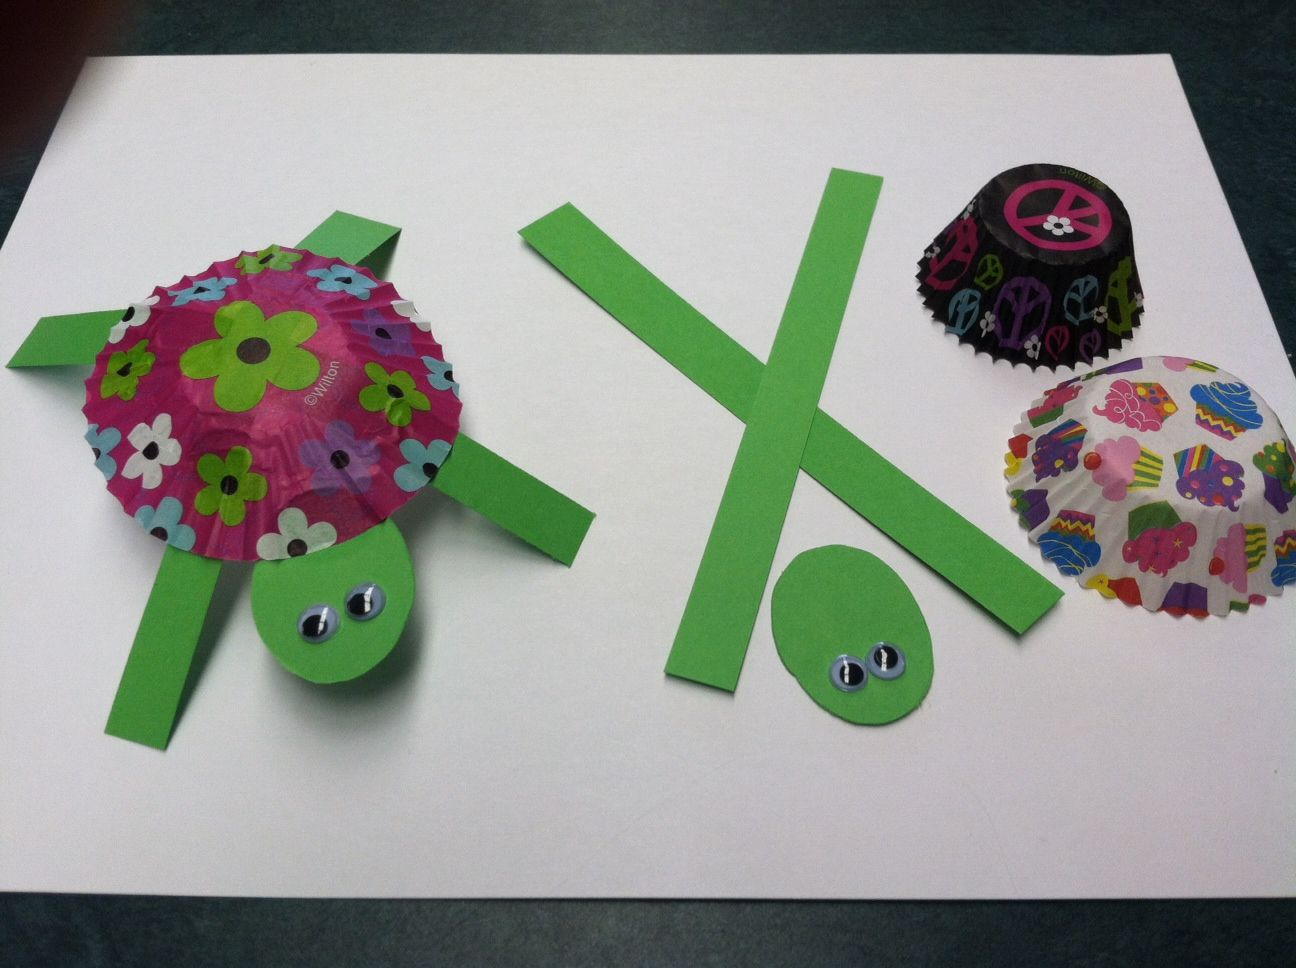 Turtle Craft For Kids Super Easy Flatten Cupcake Liner Glue Crossed Strips And Head To Bottom